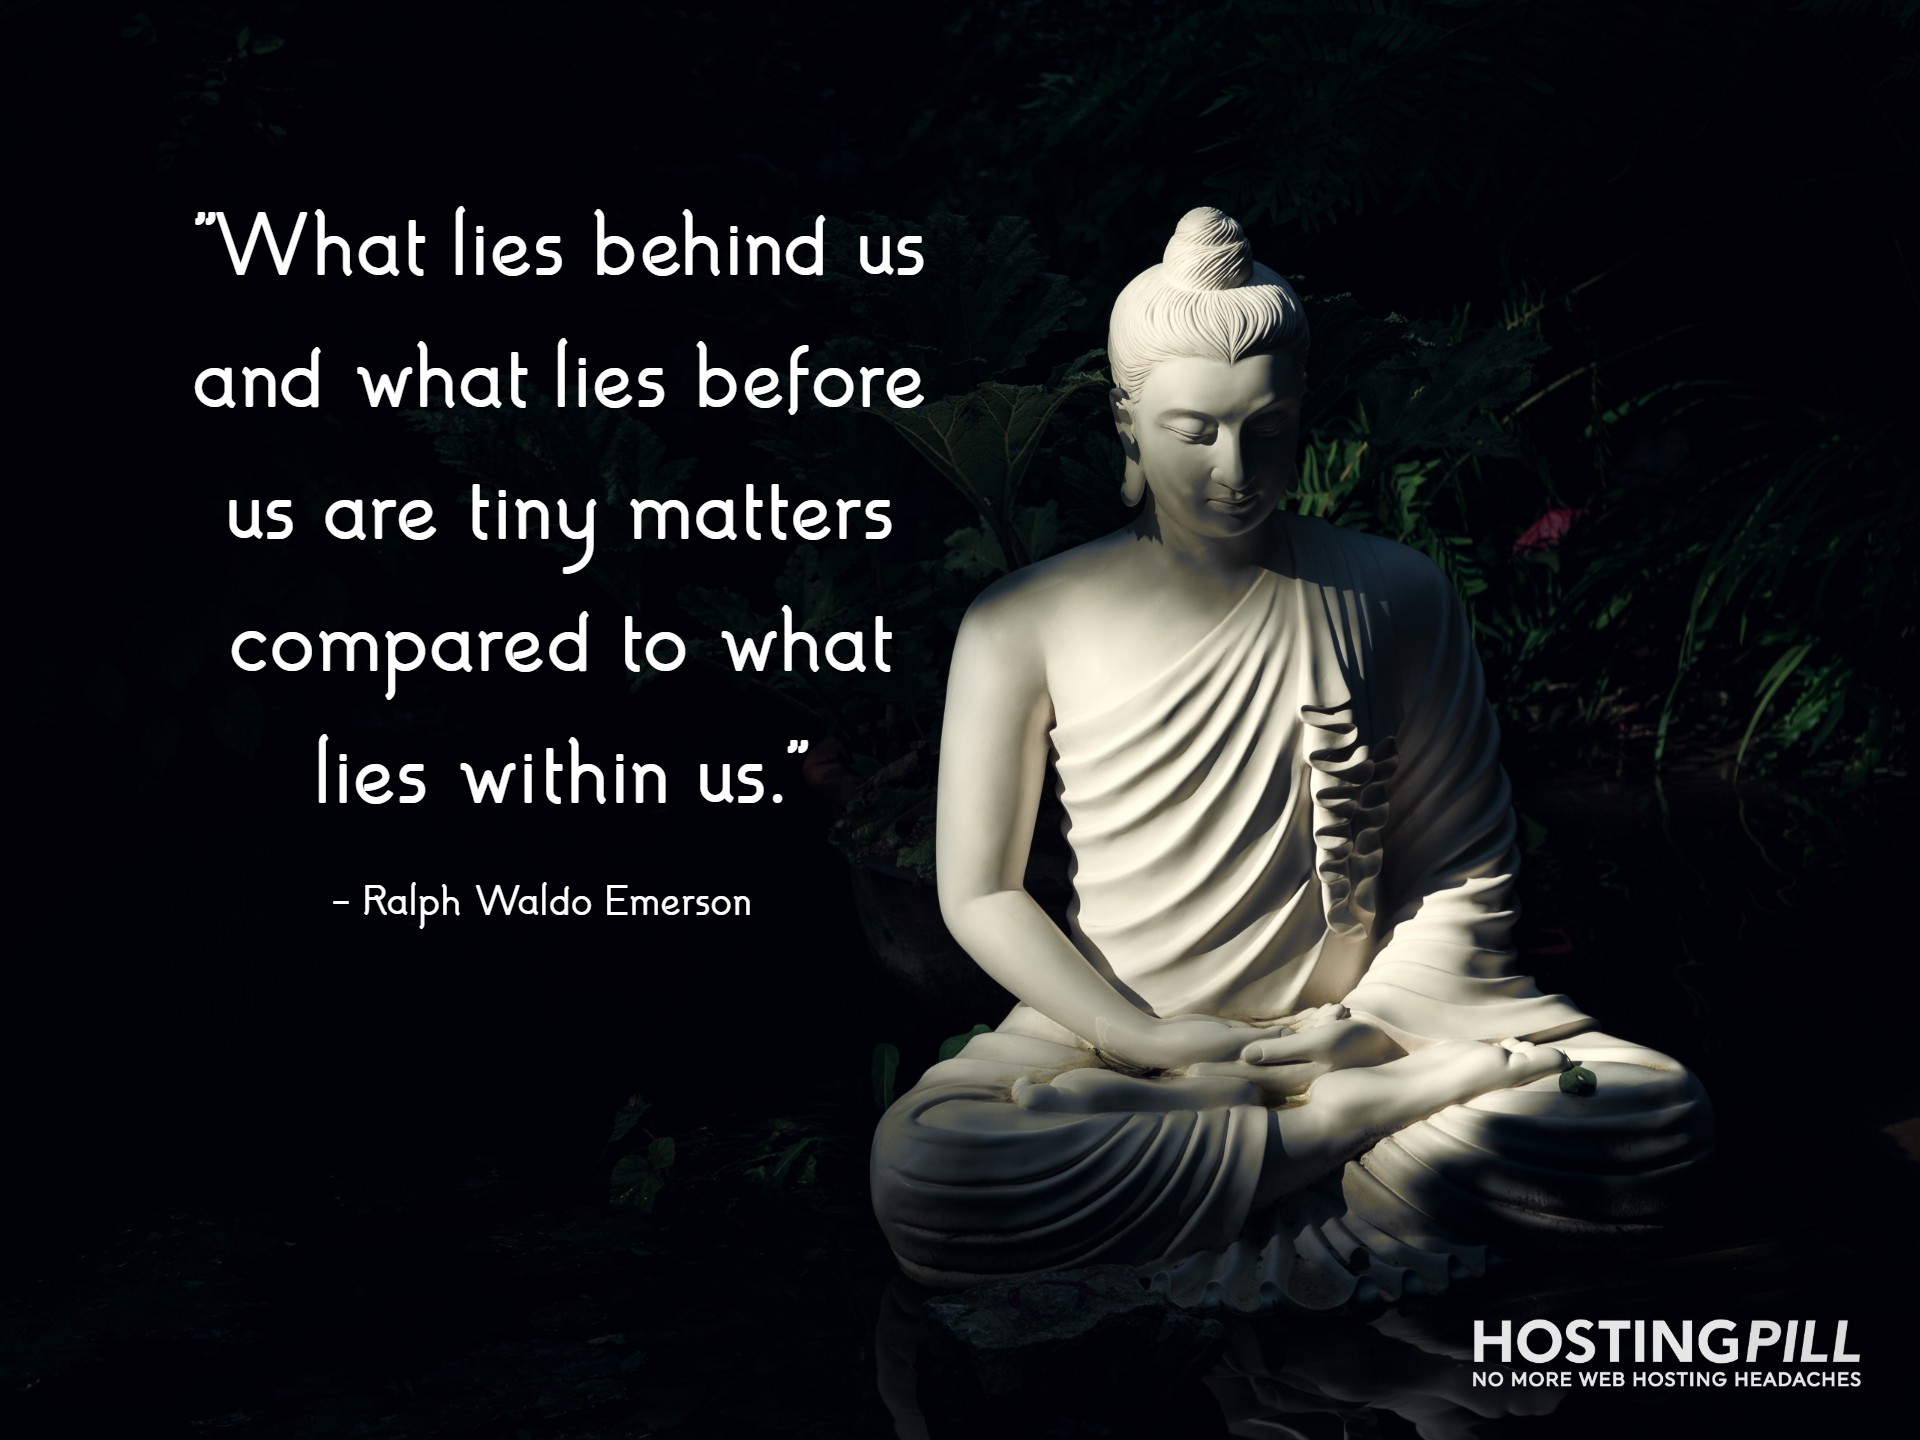 What lies behind us and what lies before us are tiny matters compared to what lies within us. - Ralph Waldo Emerson